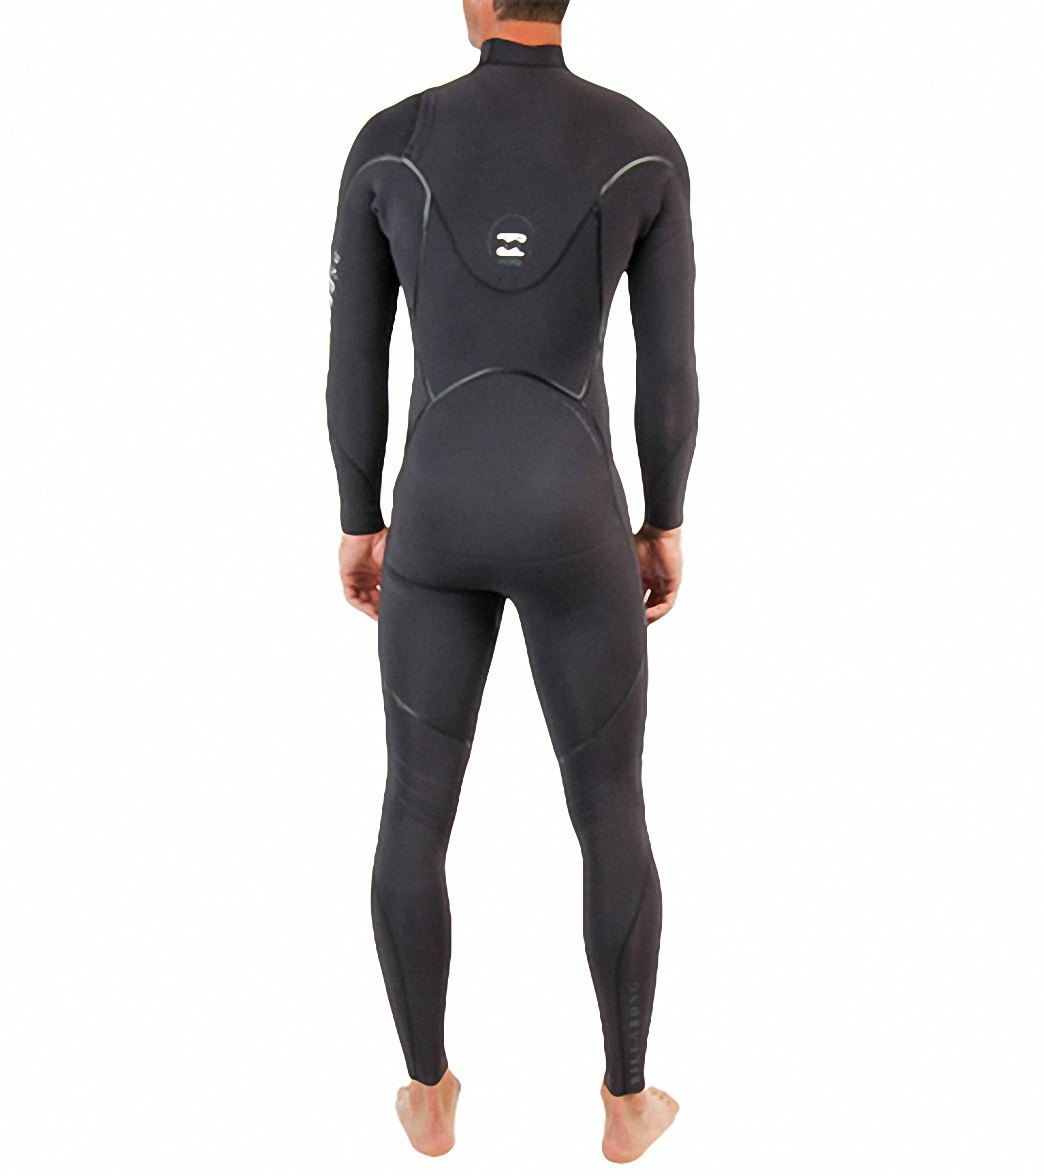 Billabong Xero Revolution 403 Men's Chest Zip 4/3mm Full Wetsuit - Black - MWFU3RC4-BLK